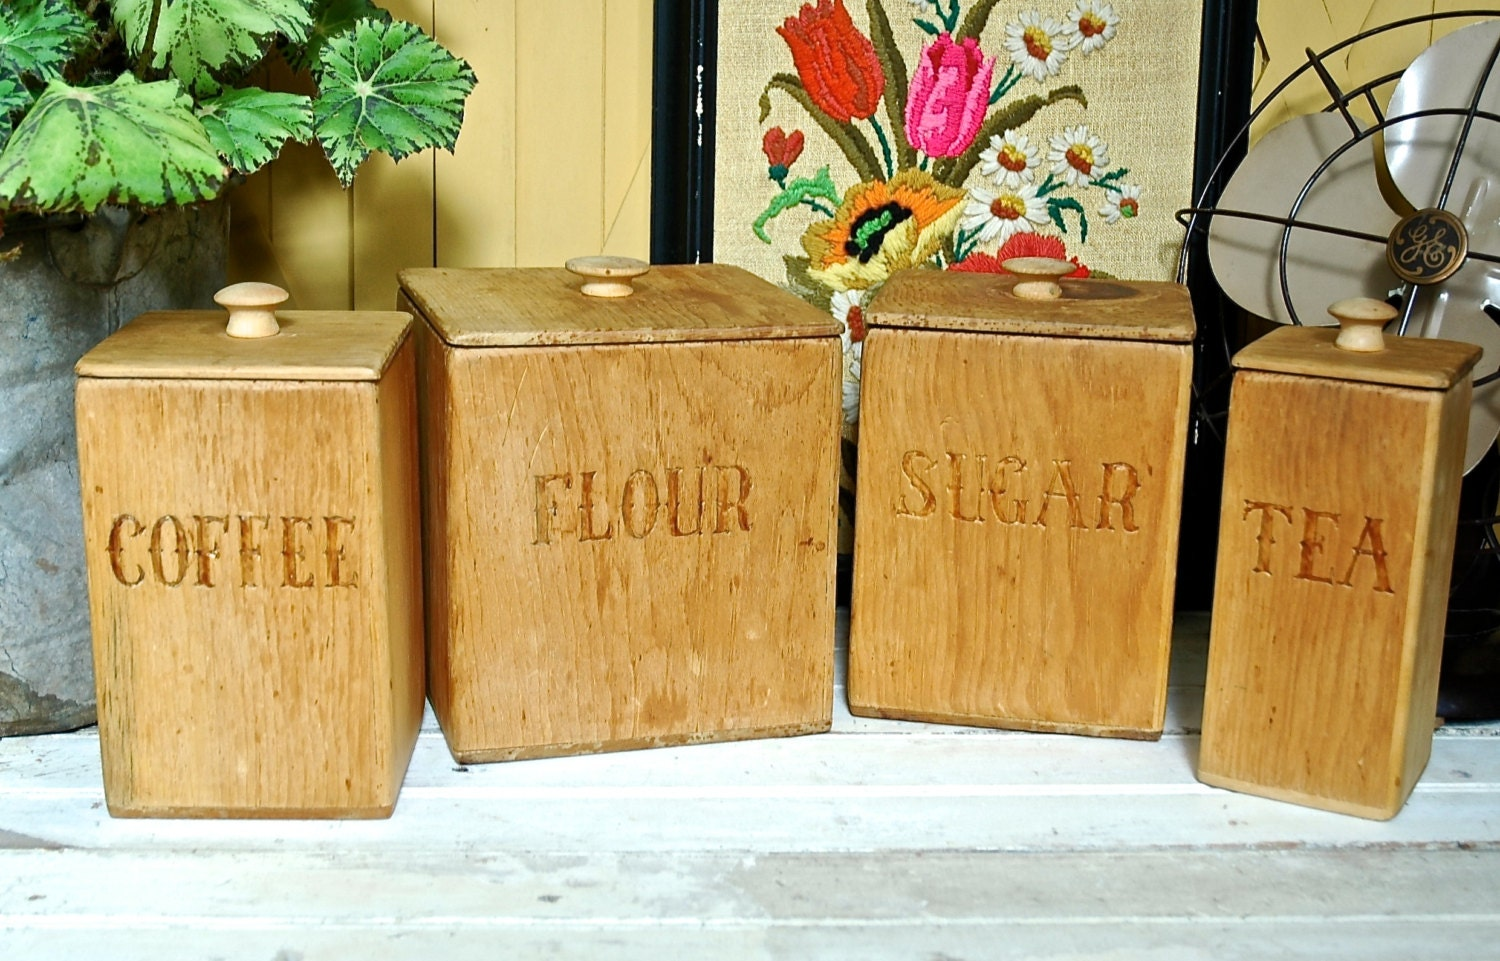 vintage handmade wooden kitchen canister set 1976 by shop houzz sierra living concepts sugar and tea wooden